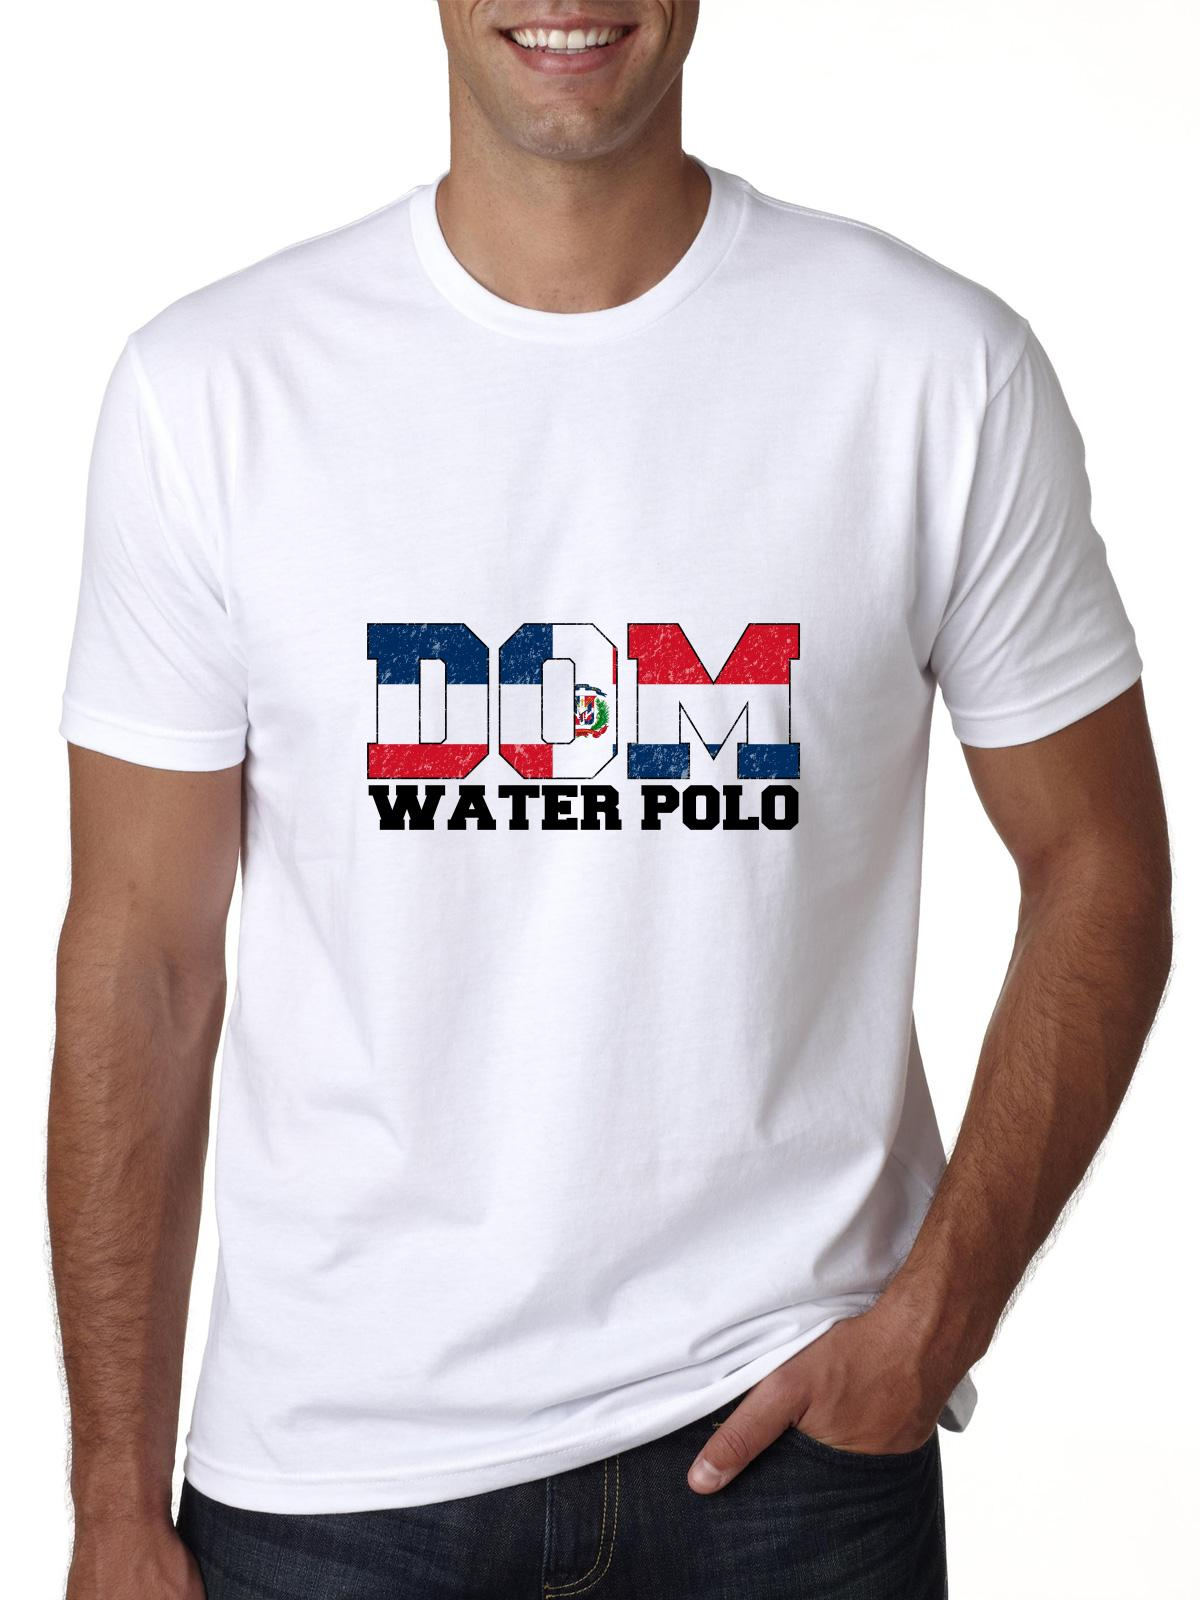 Olympic Water Polo Dominican Republic Men's T-Shirt by Hollywood Thread